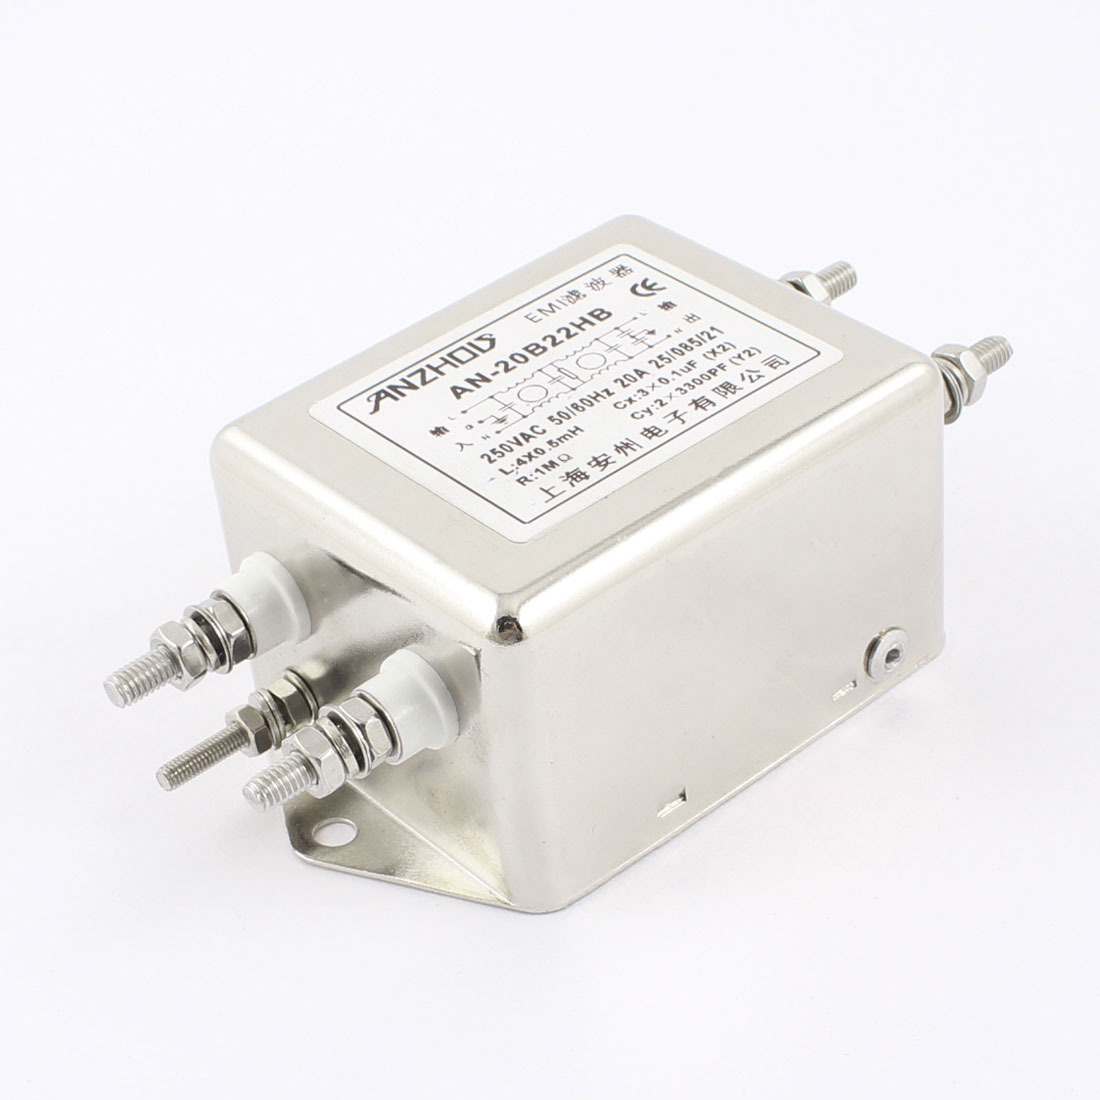 20A Rated Current AC 250V 50/60Hz AN-20B22HB Power Line EMI Filter